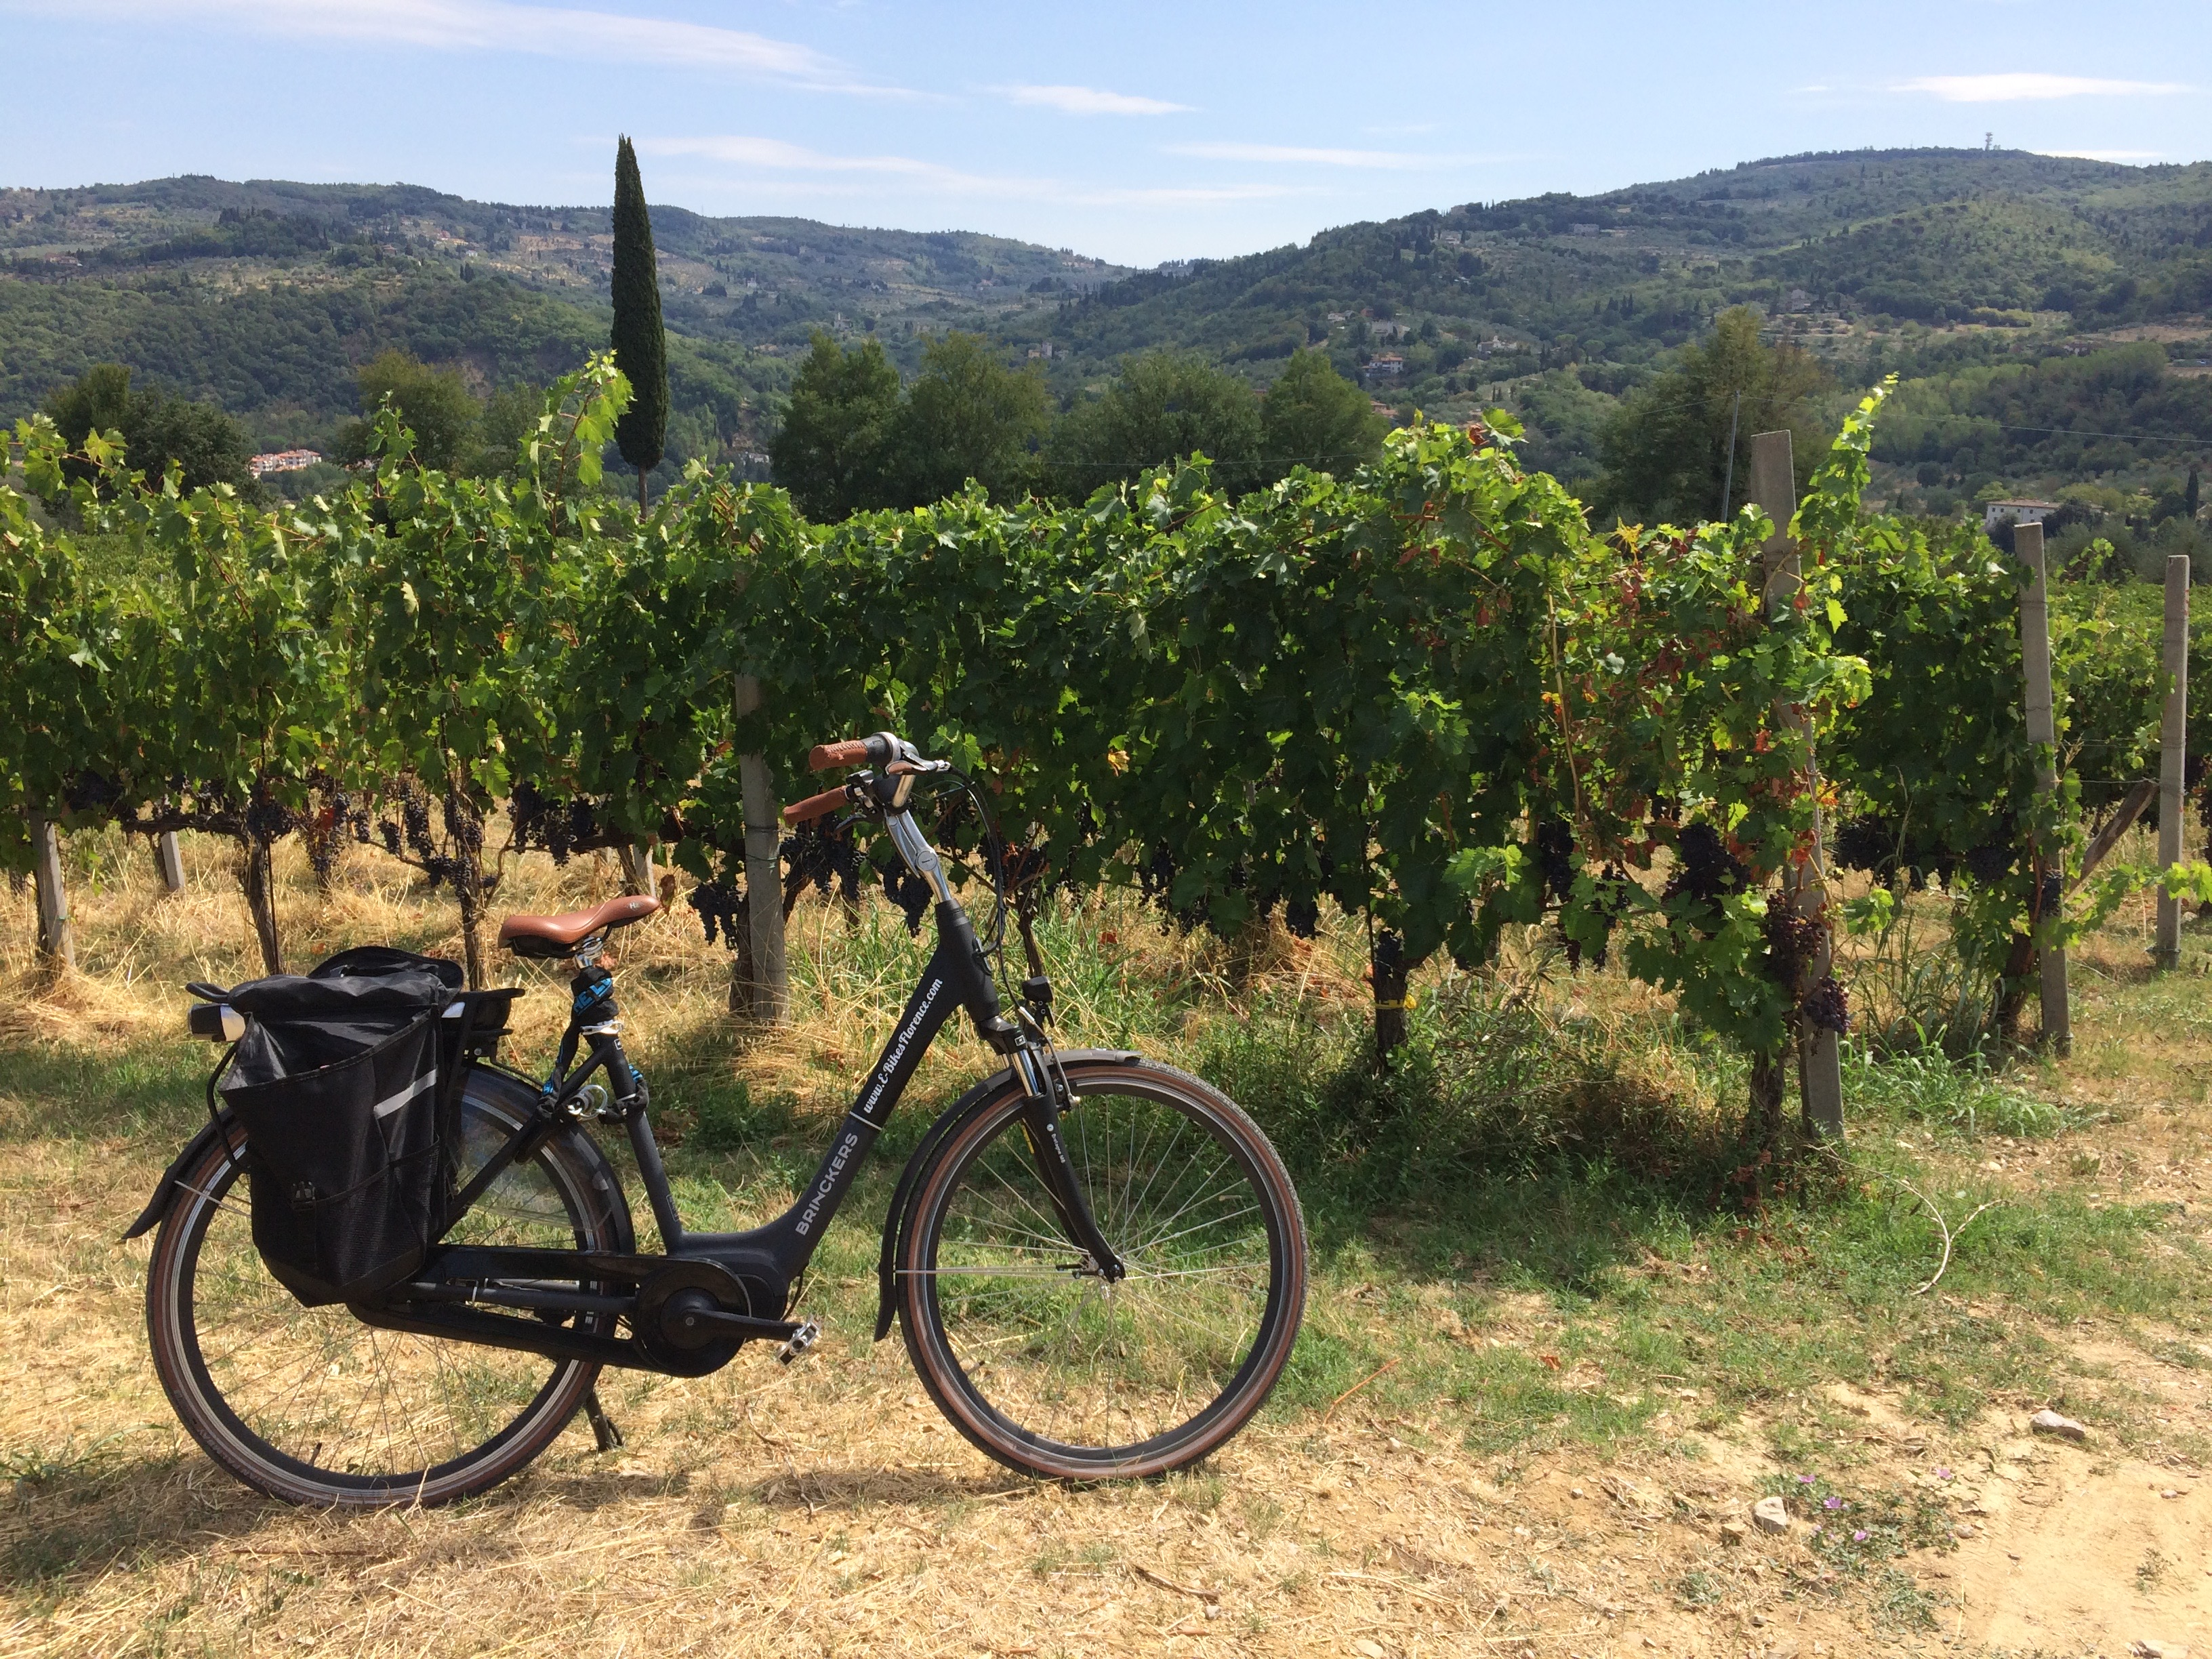 Amongst the vines on your e-bike